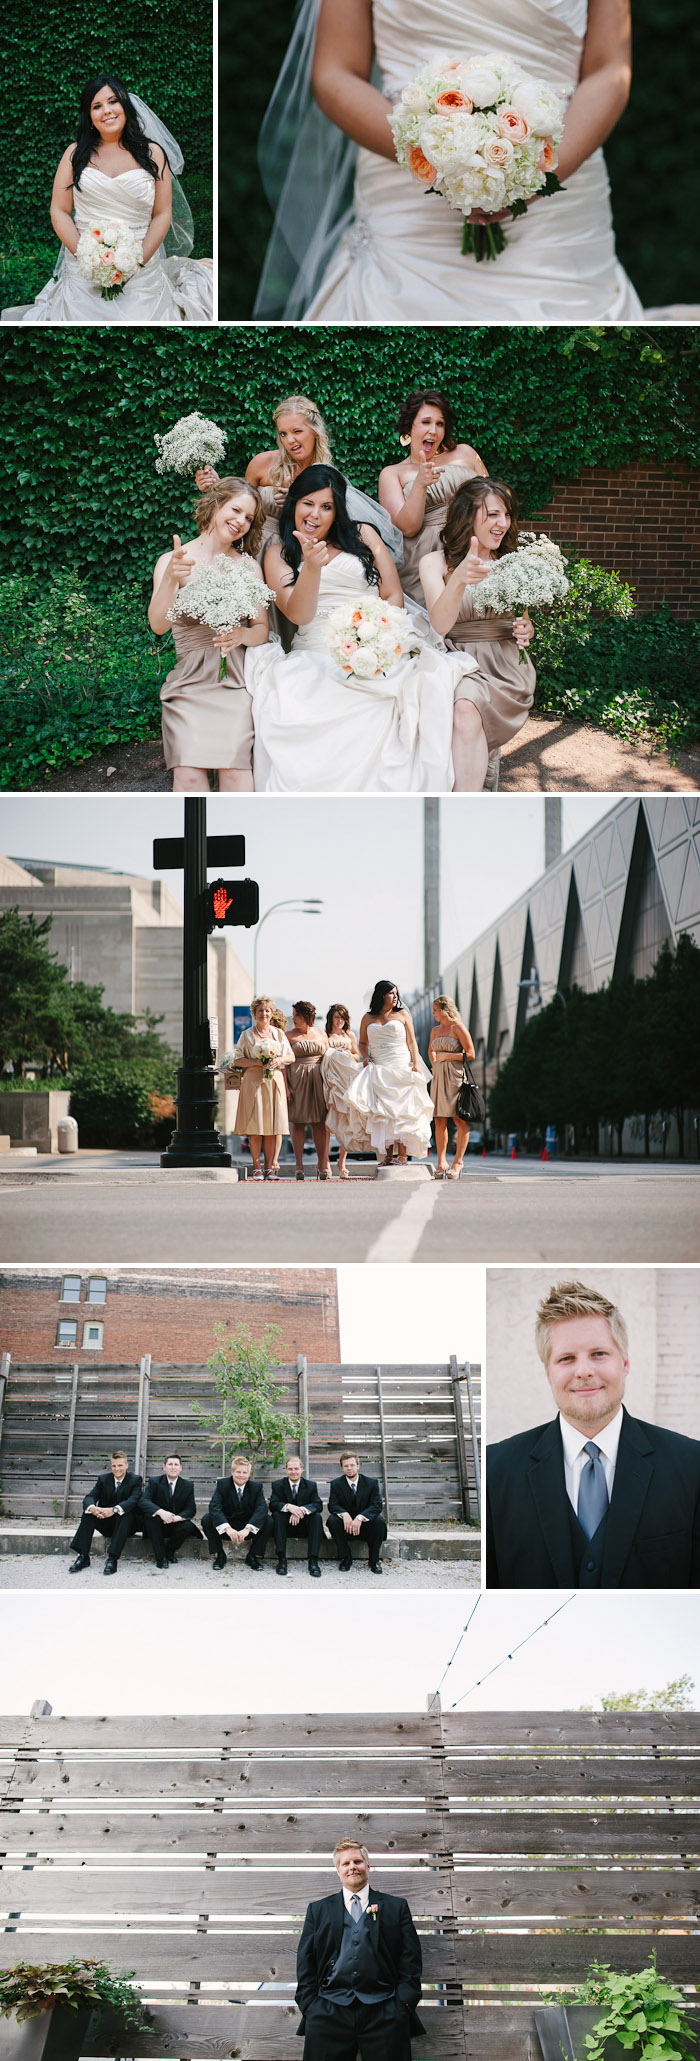 Fun portraits around downtown Kansas City.